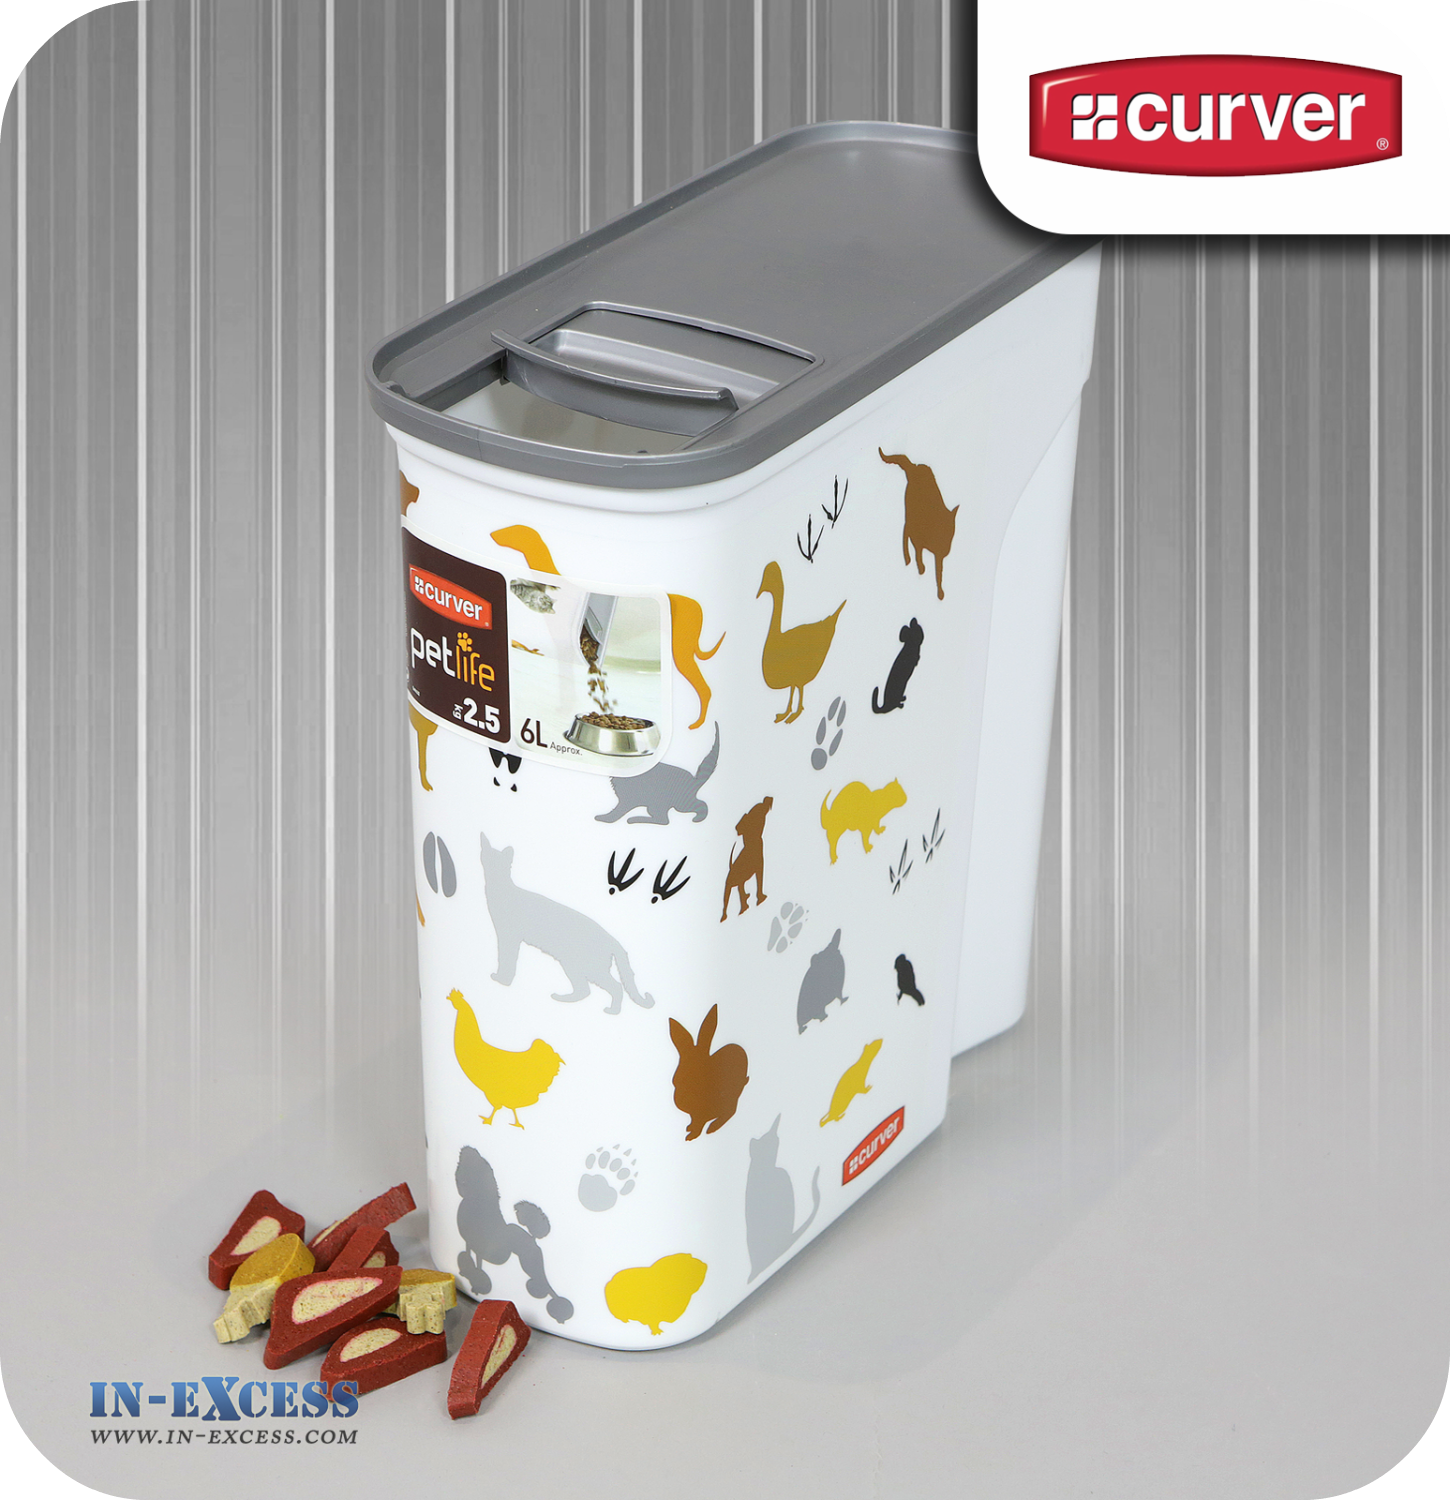 Curver Multi Pet Dry Food Container 25kg 6 Litres In Excess